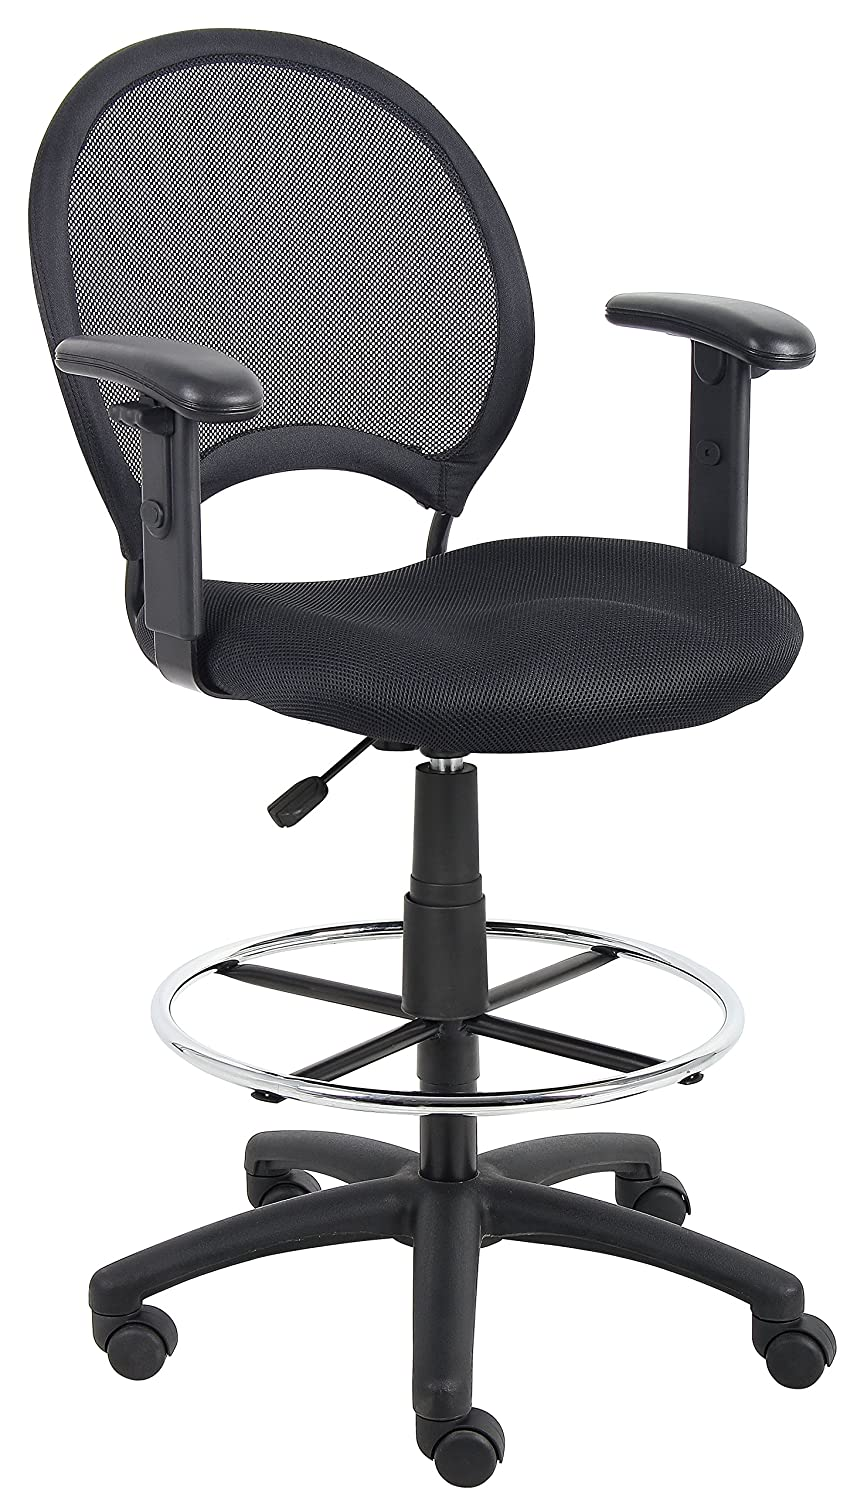 Amazon.com Boss Office Products B16216 Mesh Drafting Stool with Adjustable Arms in Black Kitchen u0026 Dining  sc 1 st  Amazon.com & Amazon.com: Boss Office Products B16216 Mesh Drafting Stool with ... islam-shia.org